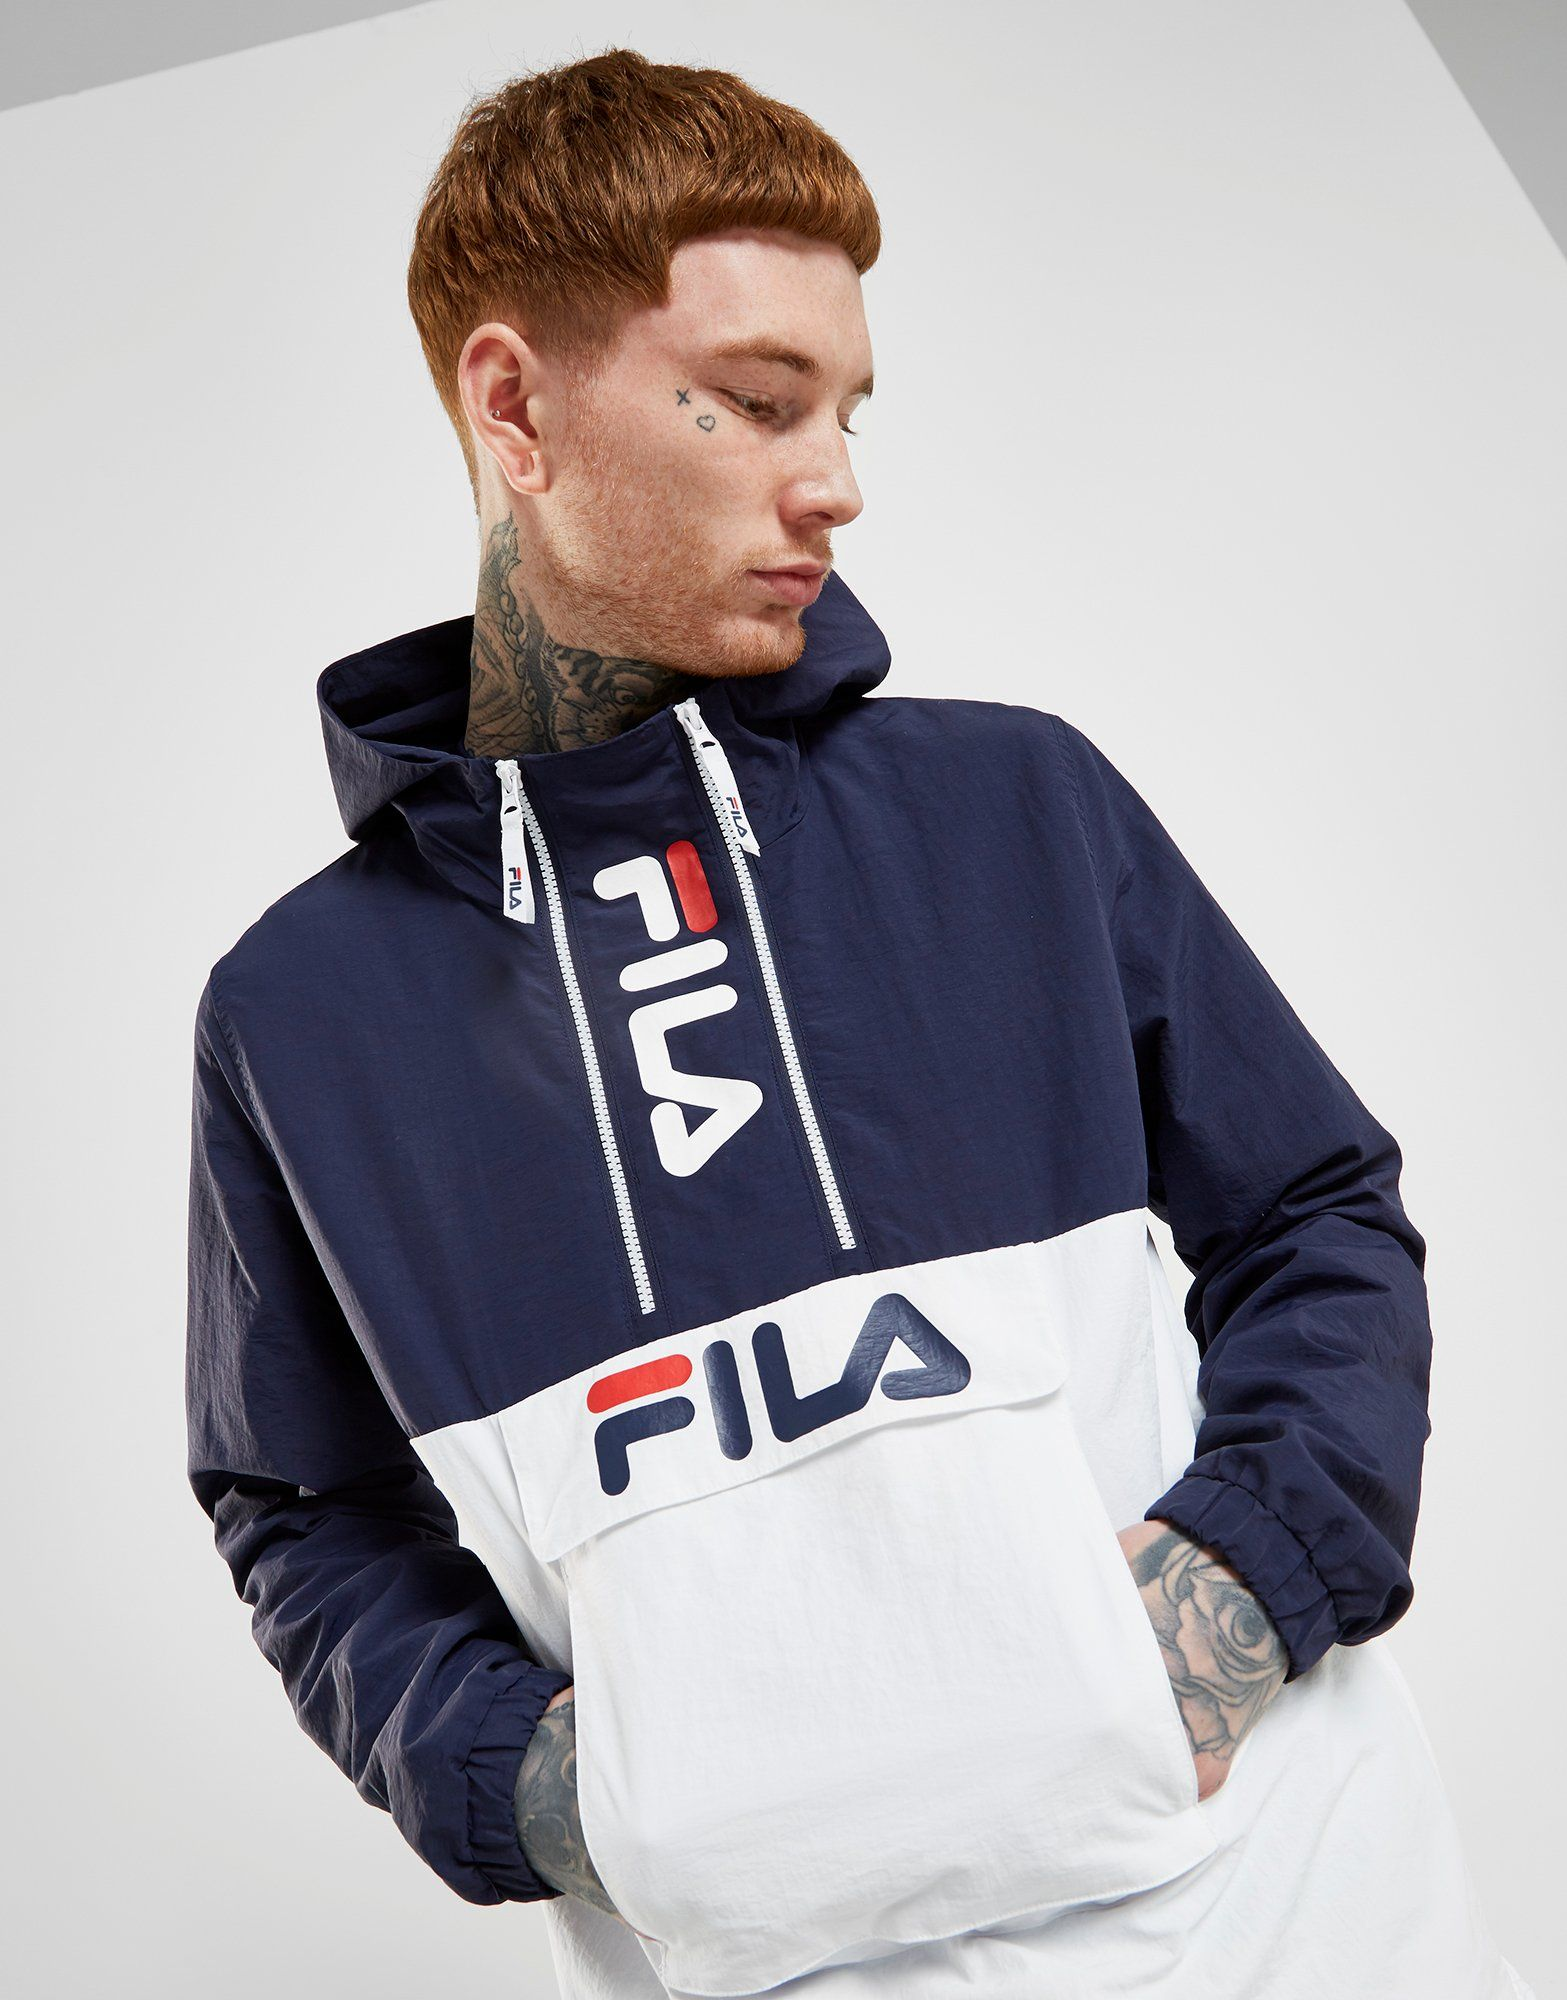 Fila Gilder Lightweight Jacket